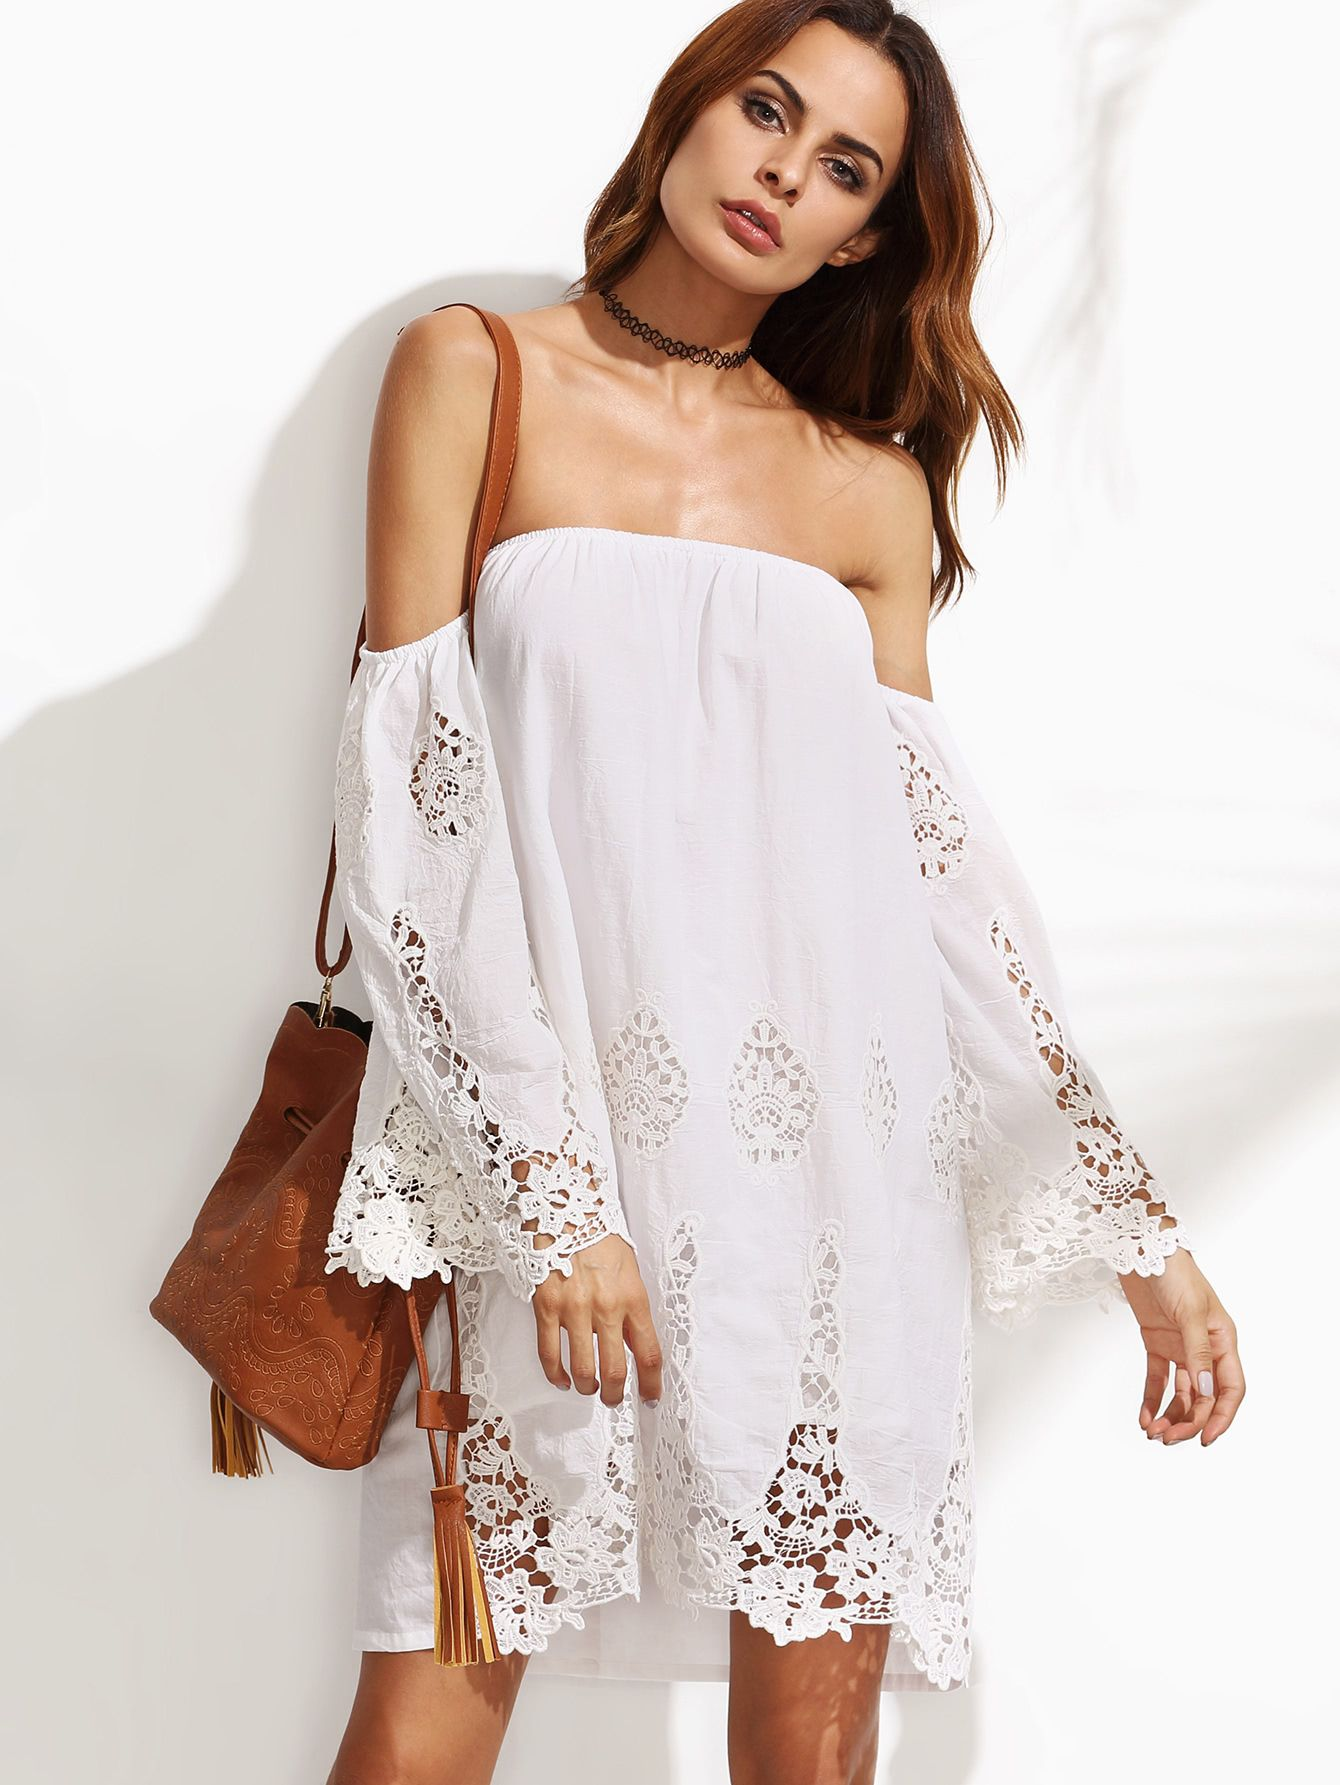 93772f80f7 Shop Bardot Crochet Lace Beach Dress online. SheIn offers Bardot Crochet  Lace Beach Dress & more to fit your fashionable needs.